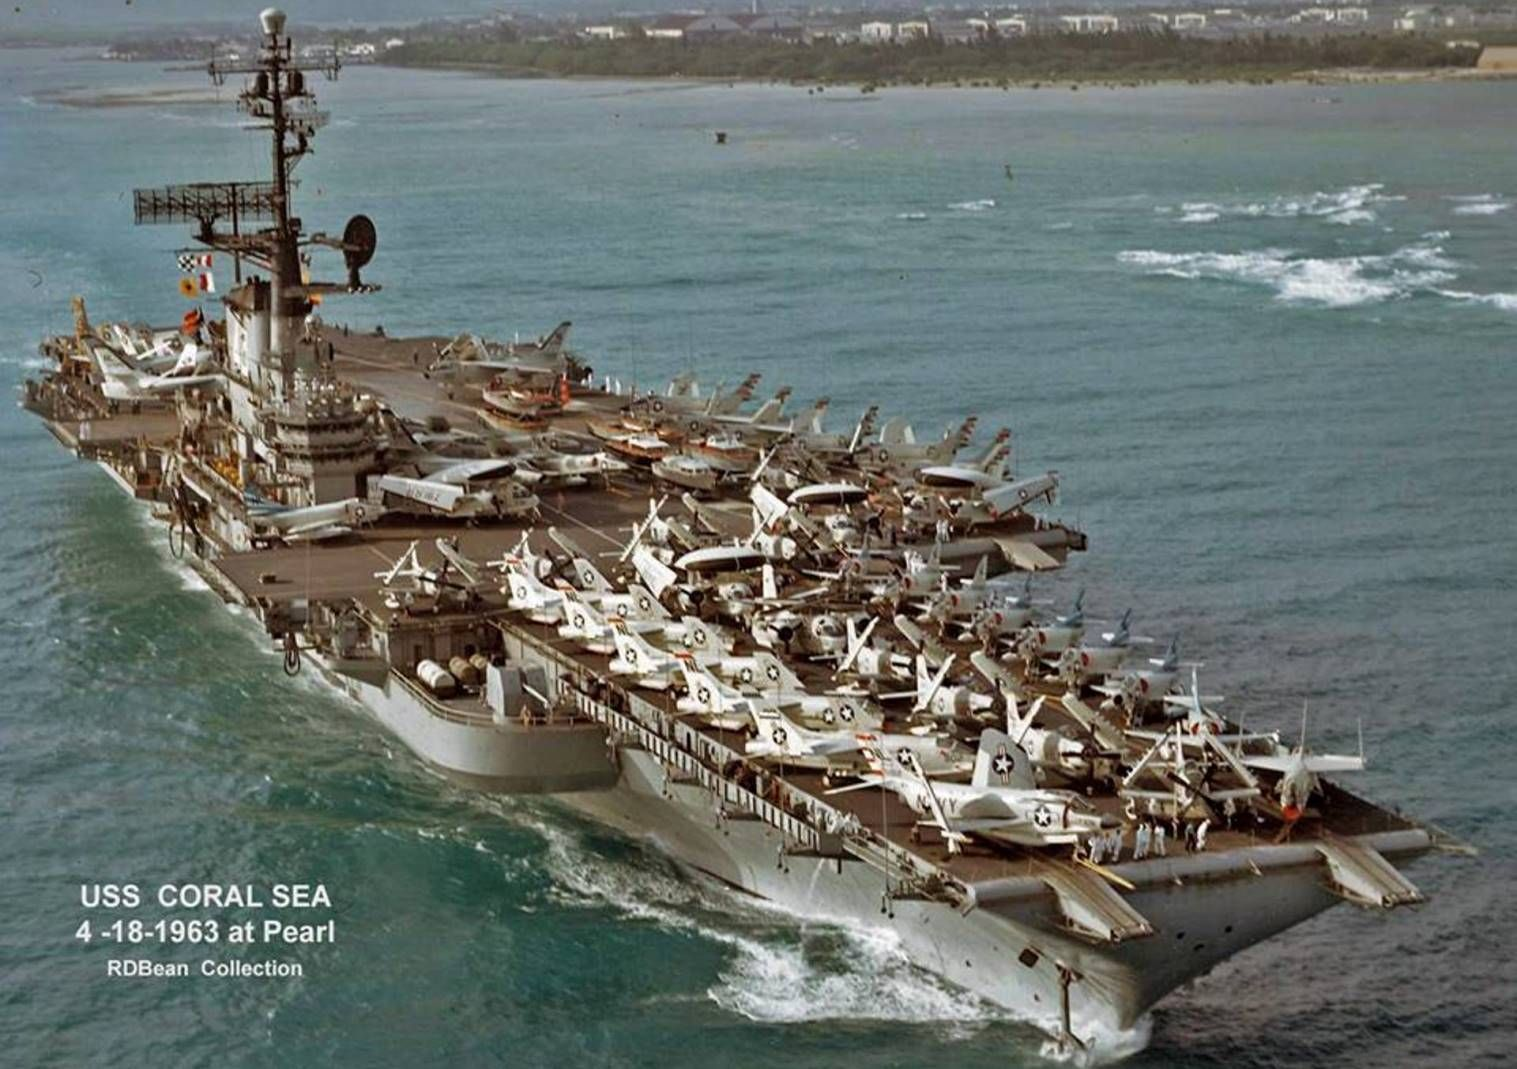 uss coral sea cv 43 looking spiffy at pearl